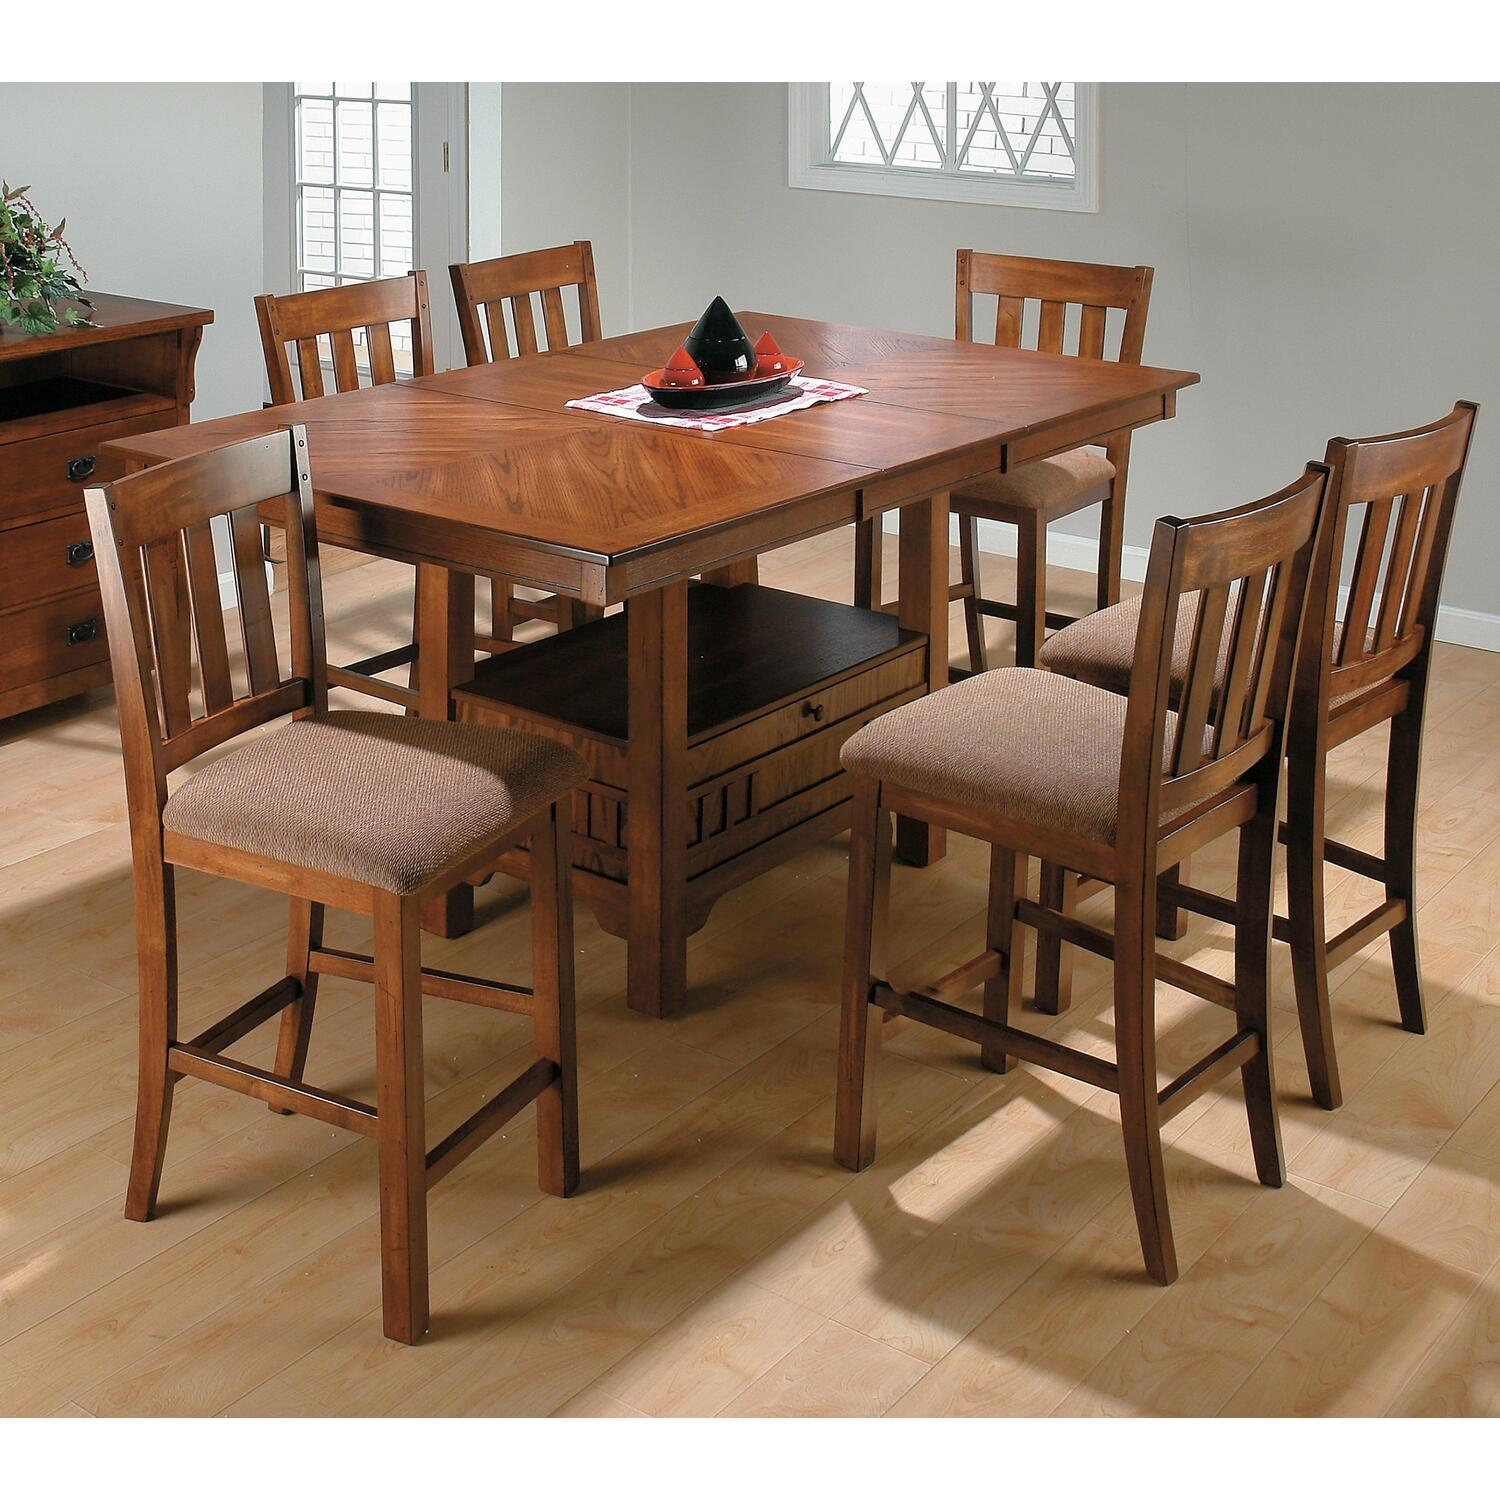 counter height 7 piece dining set by oj commerce 477 chrct 1